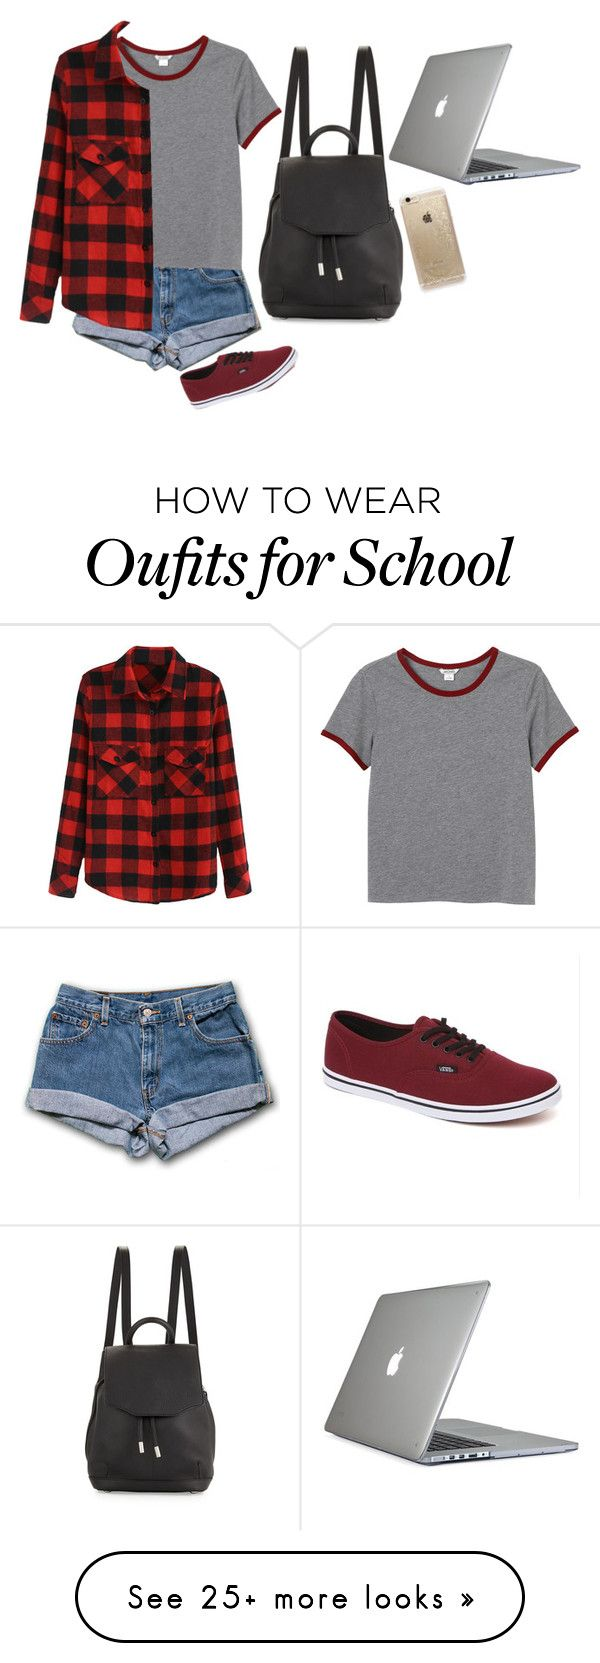 """""""School"""" by vintage38 on Polyvore featuring rag & bone, Vans, Monki, Speck and Rifle Paper Co"""